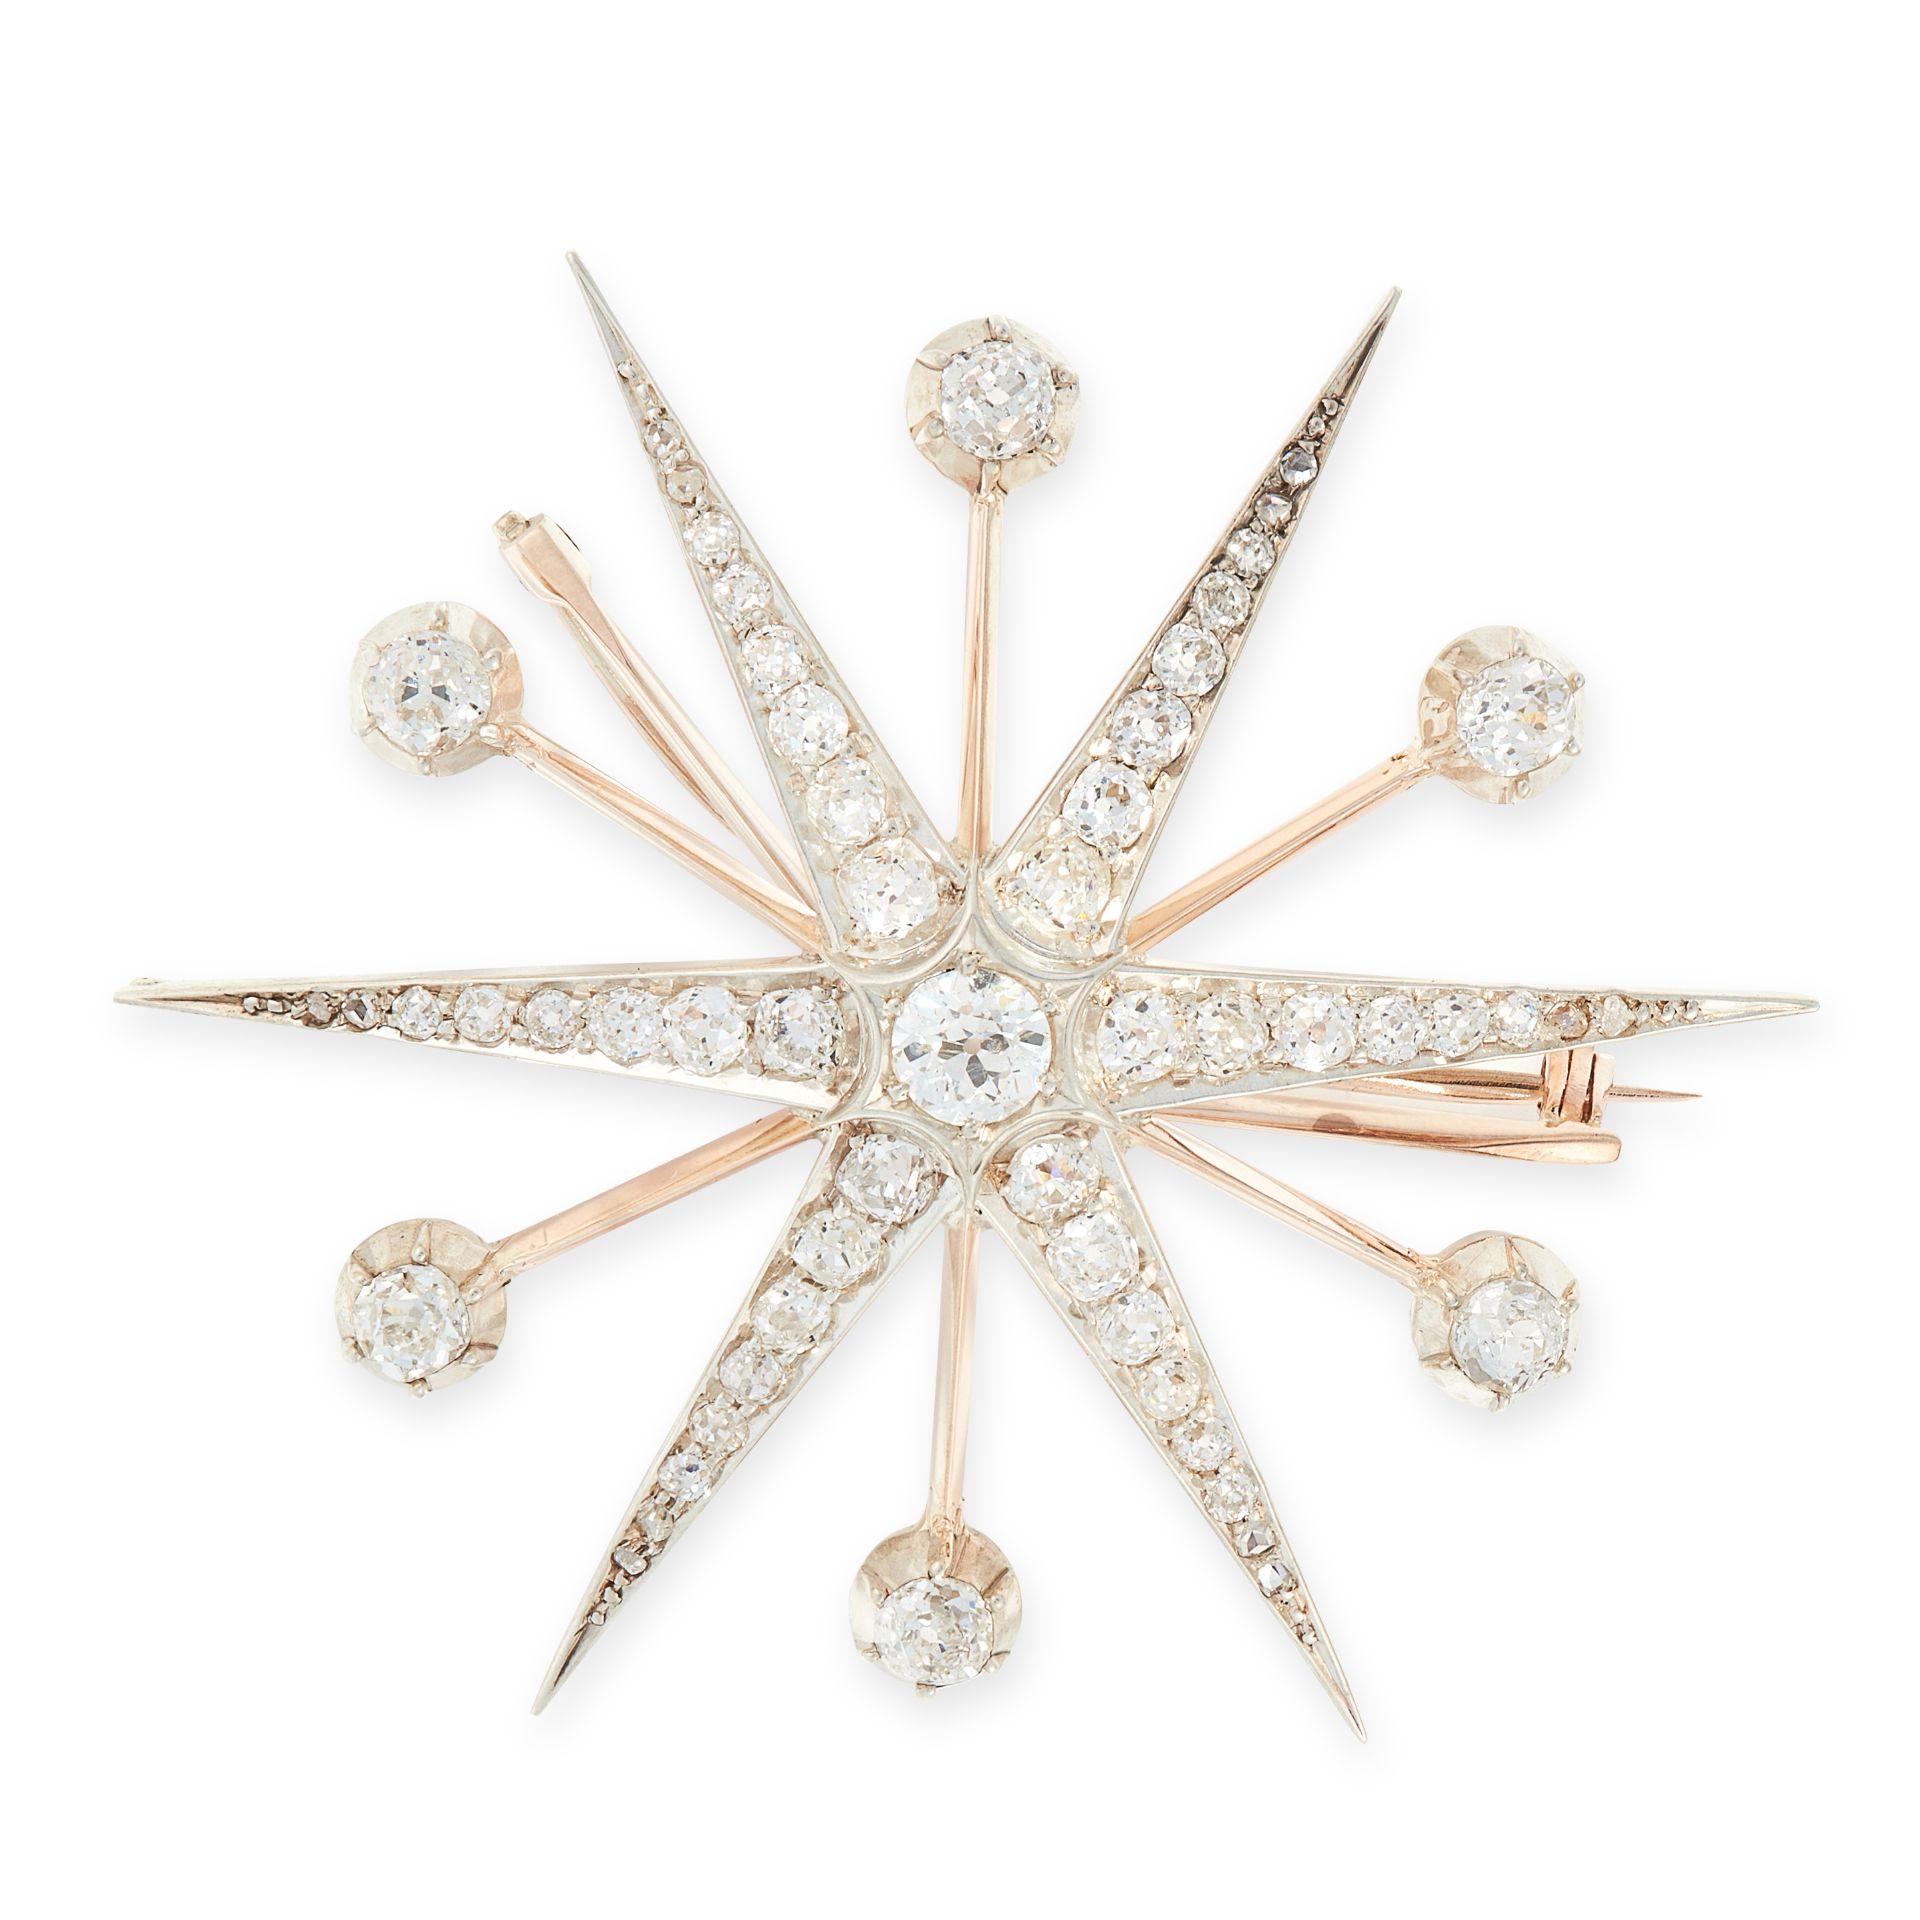 AN ANTIQUE DIAMOND STAR BROOCH in high carat yellow gold, designed as a six armed star, set at the